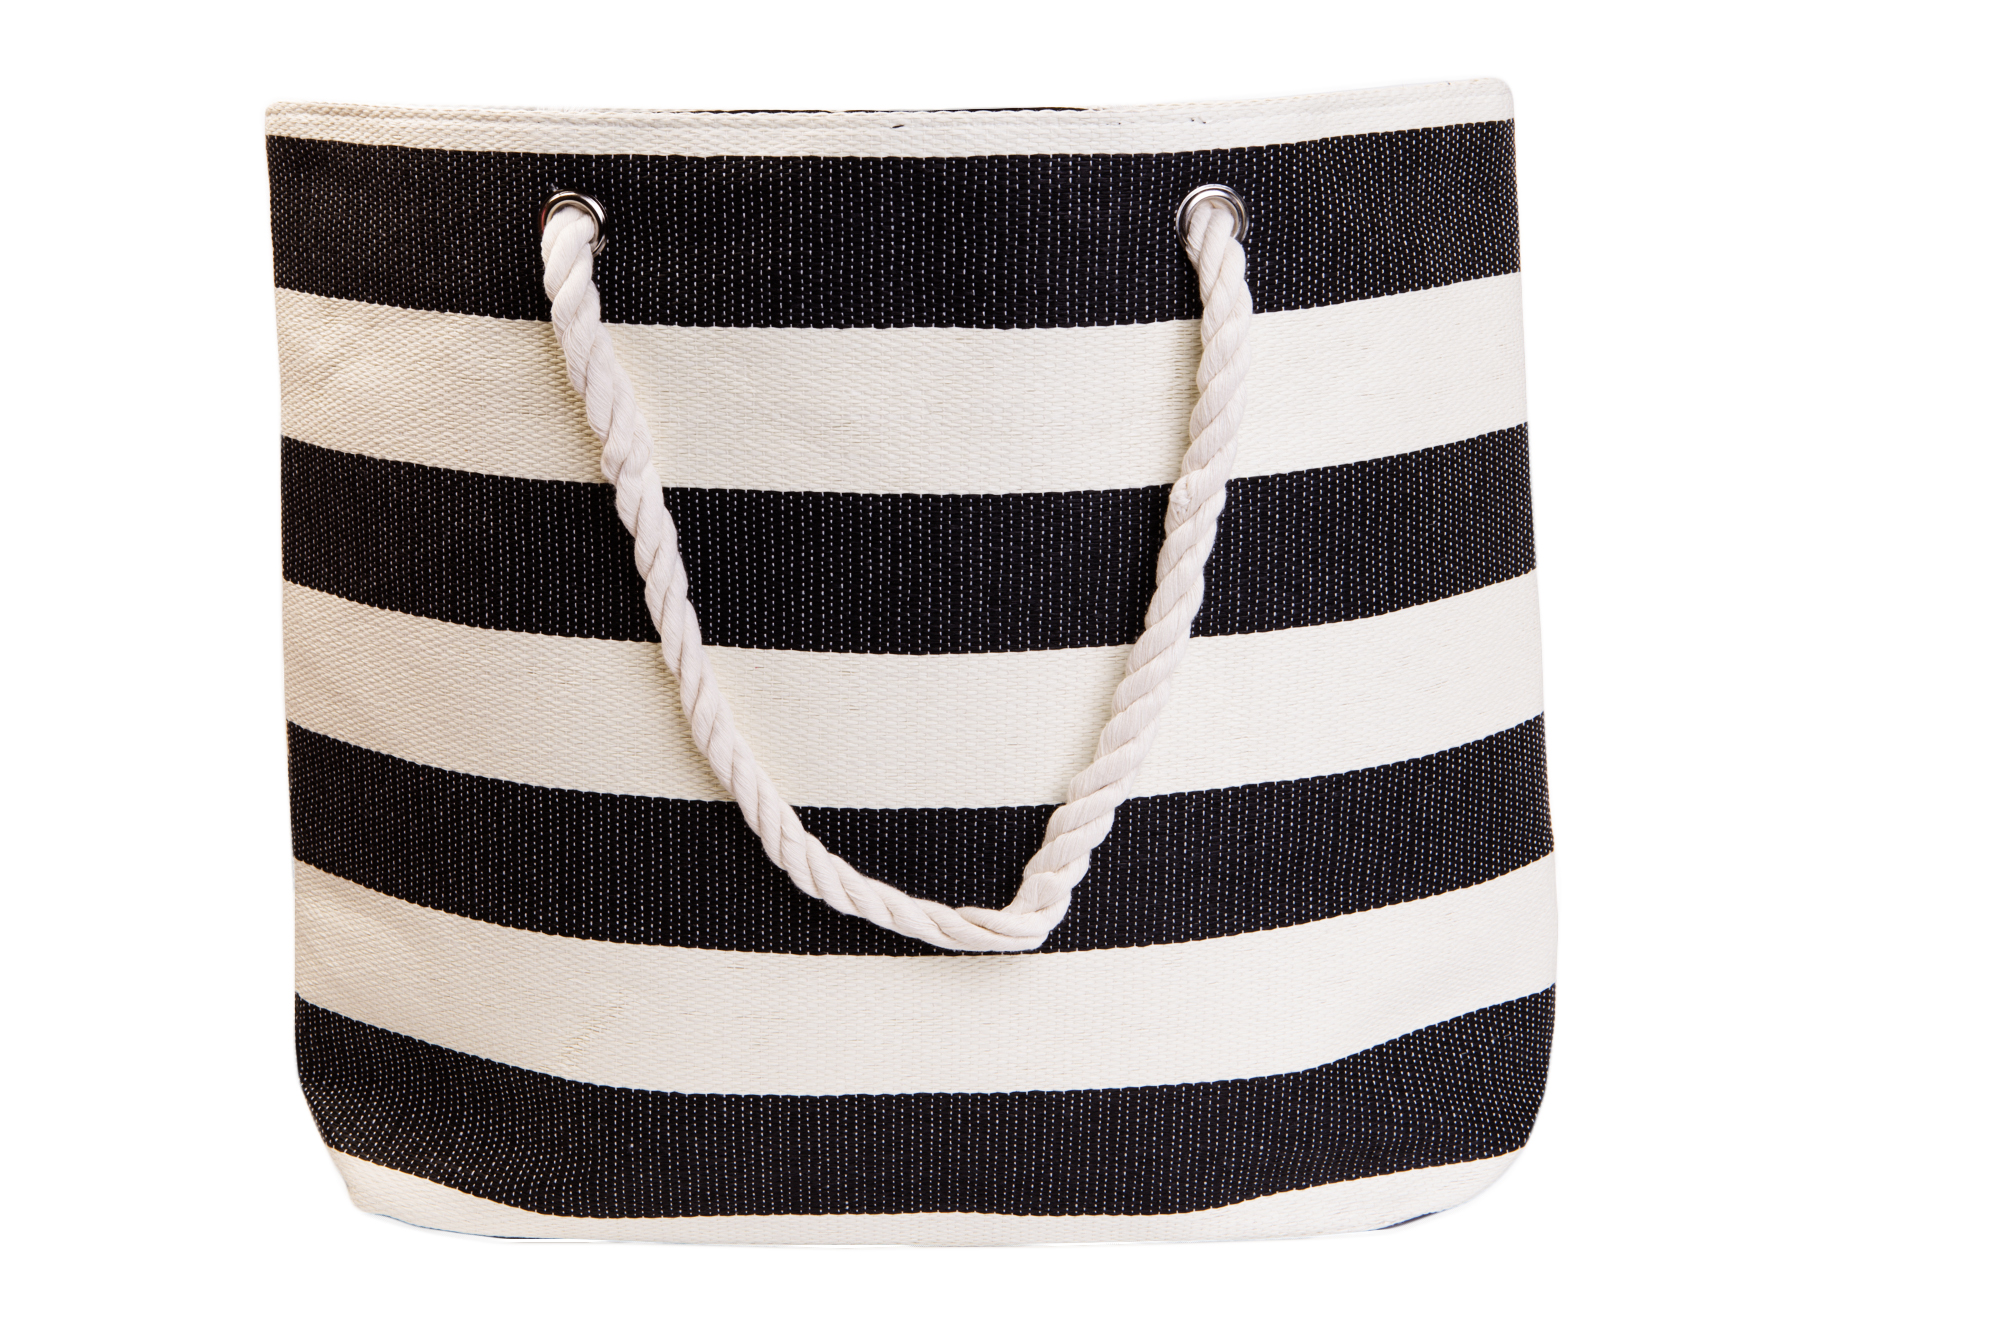 Straw Beach Bags W/ Pocket - Black Stripes